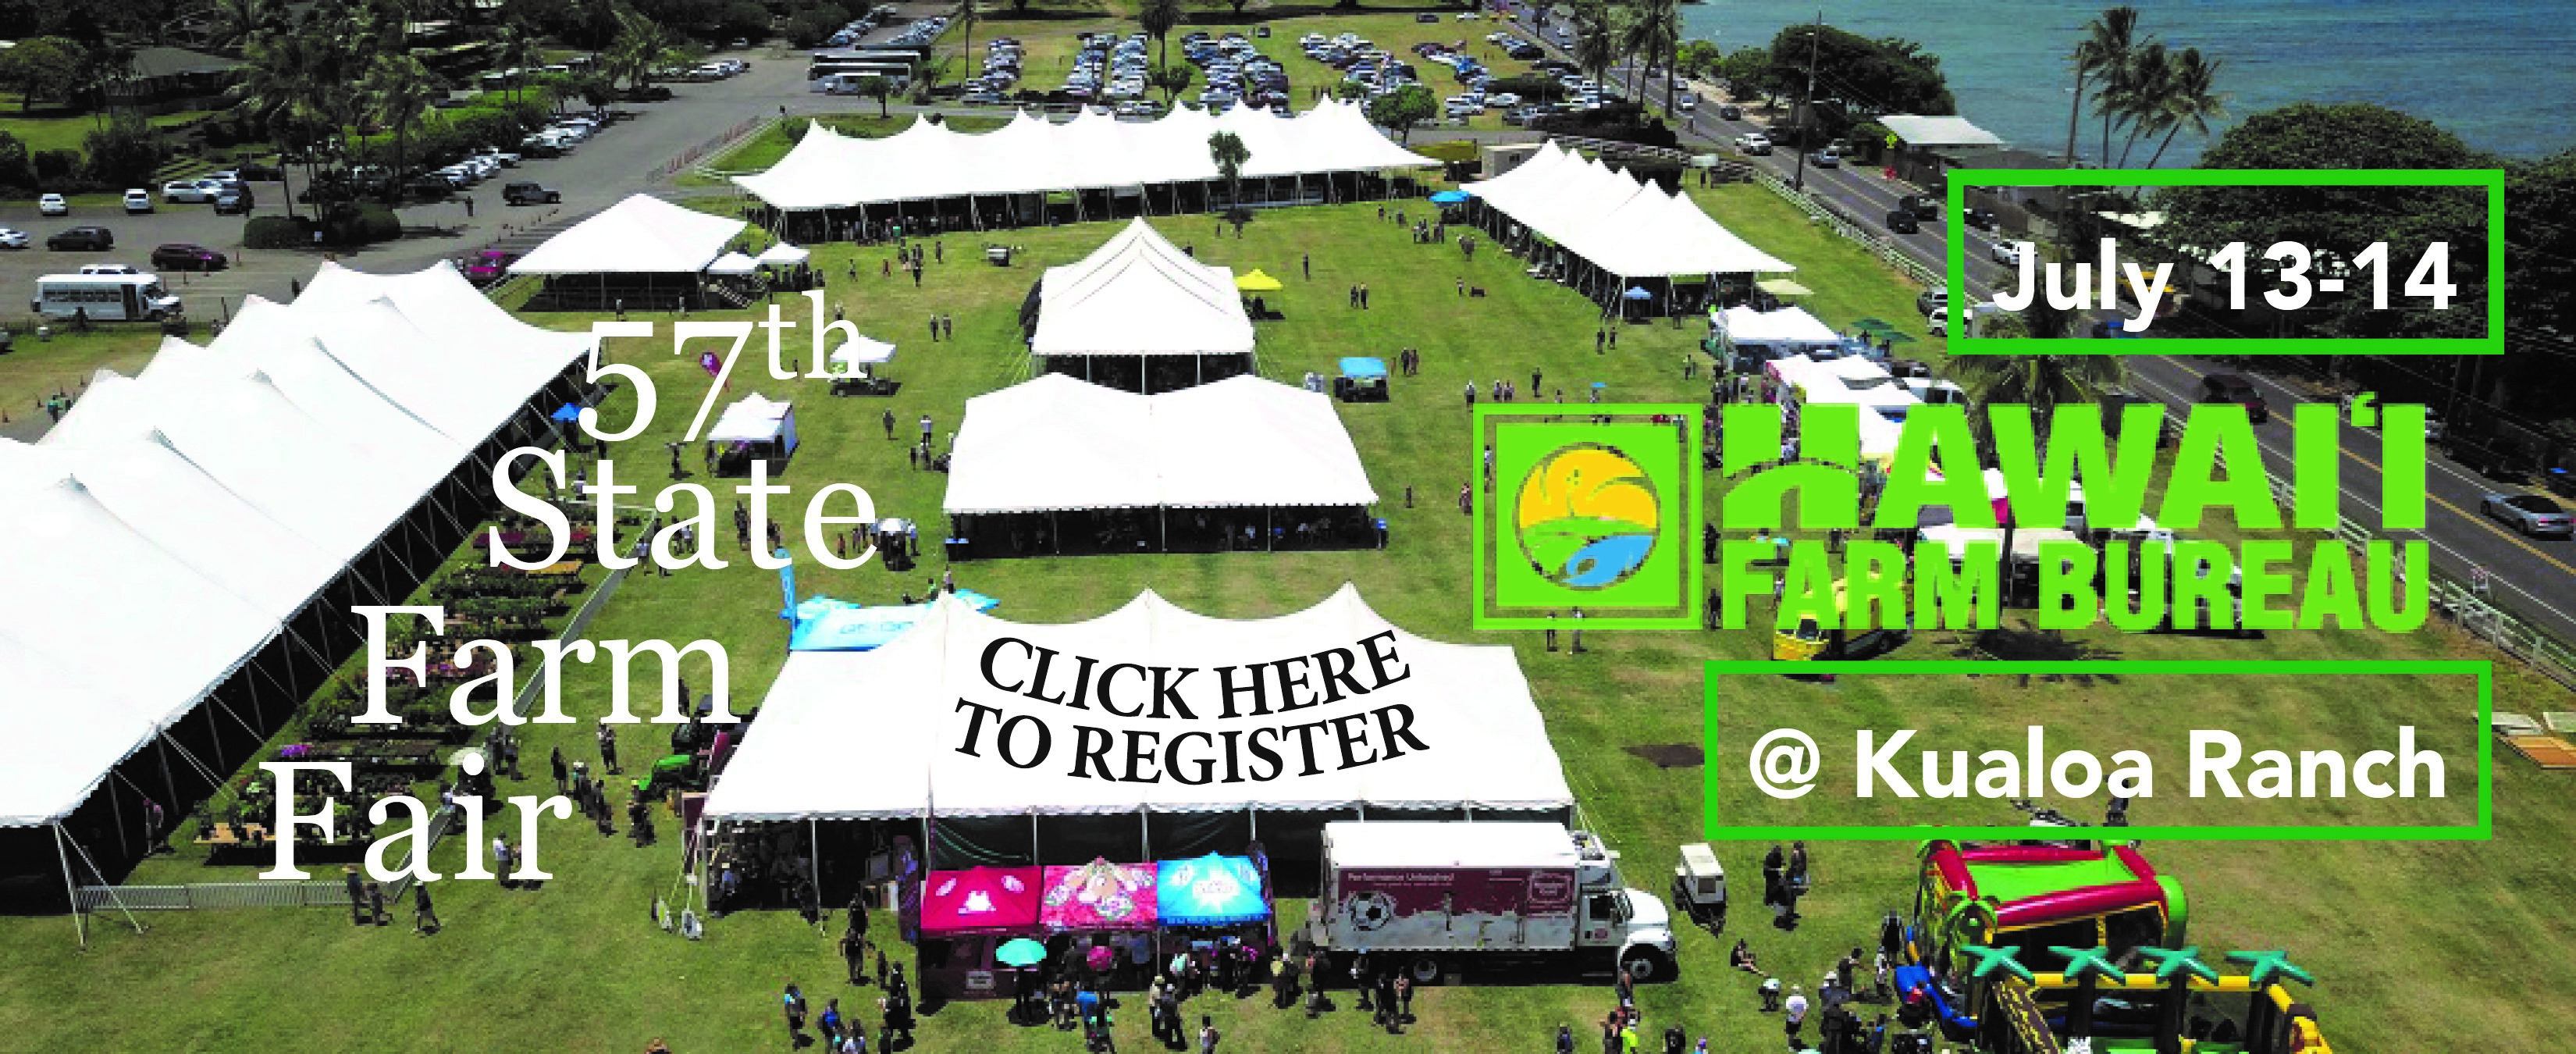 57th State Farm Fair: July 13-14 @ Kualoa Ranch